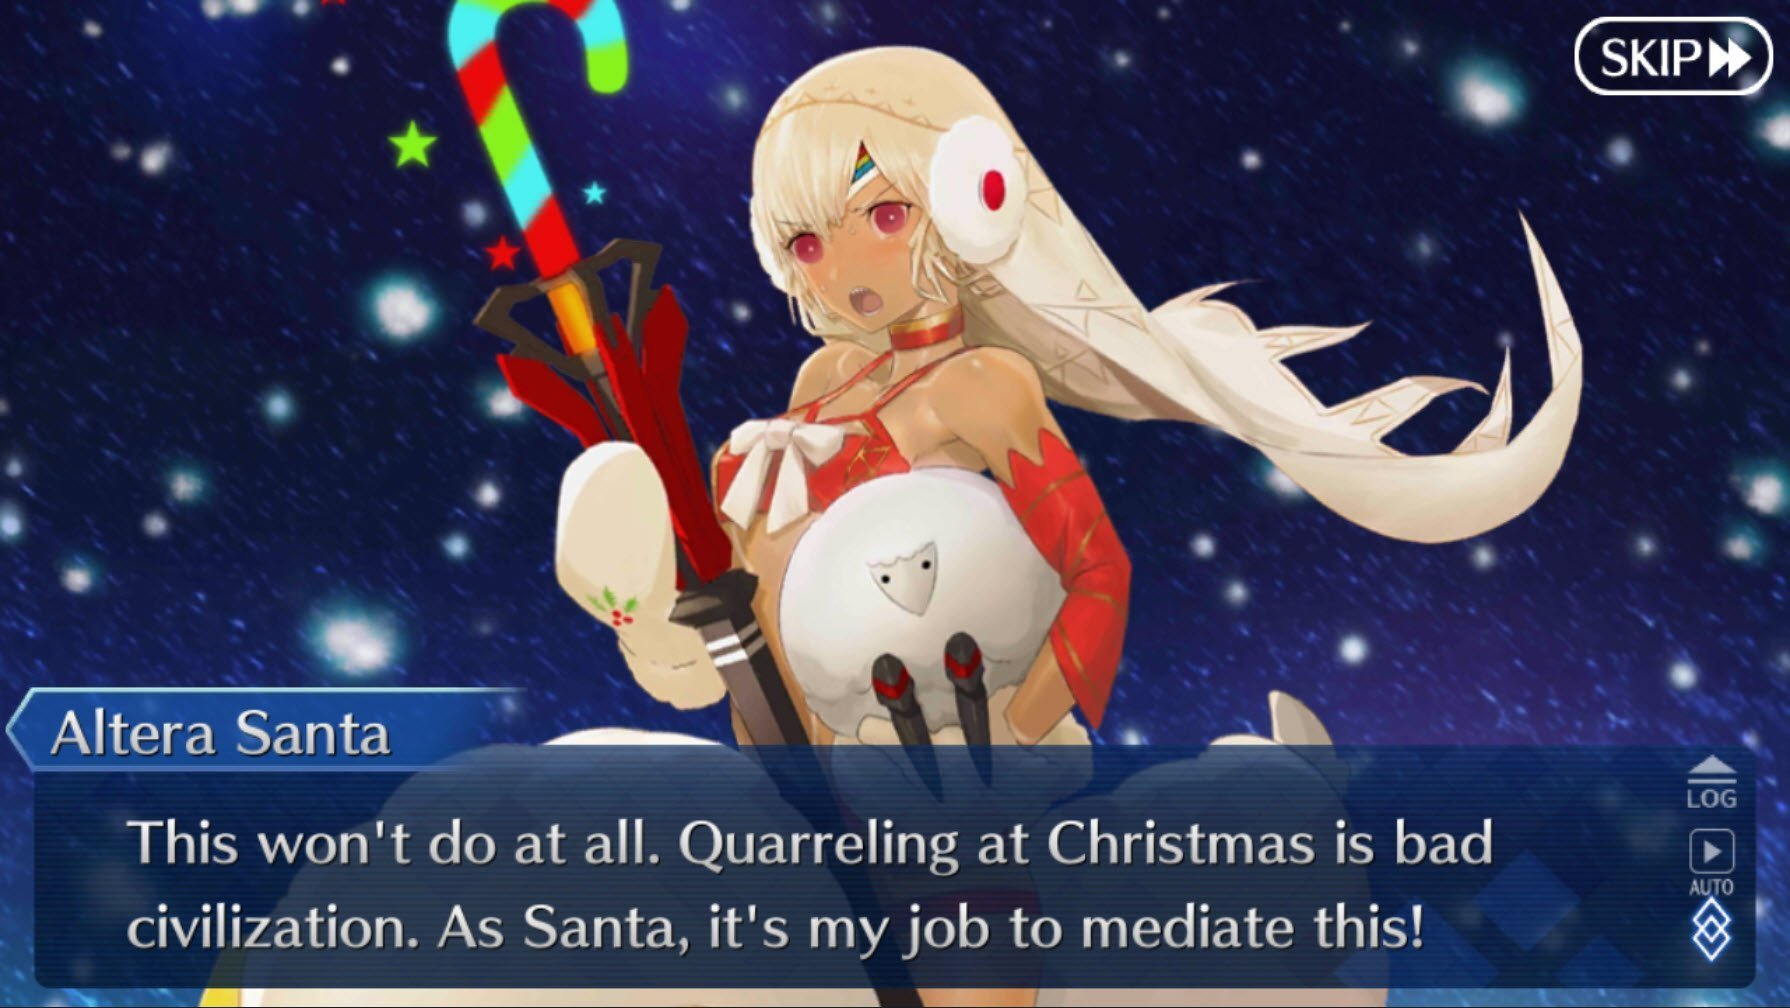 Fgo 2020 Christmas FGO] Farming the Christmas 2019 event   Shards of Imagination